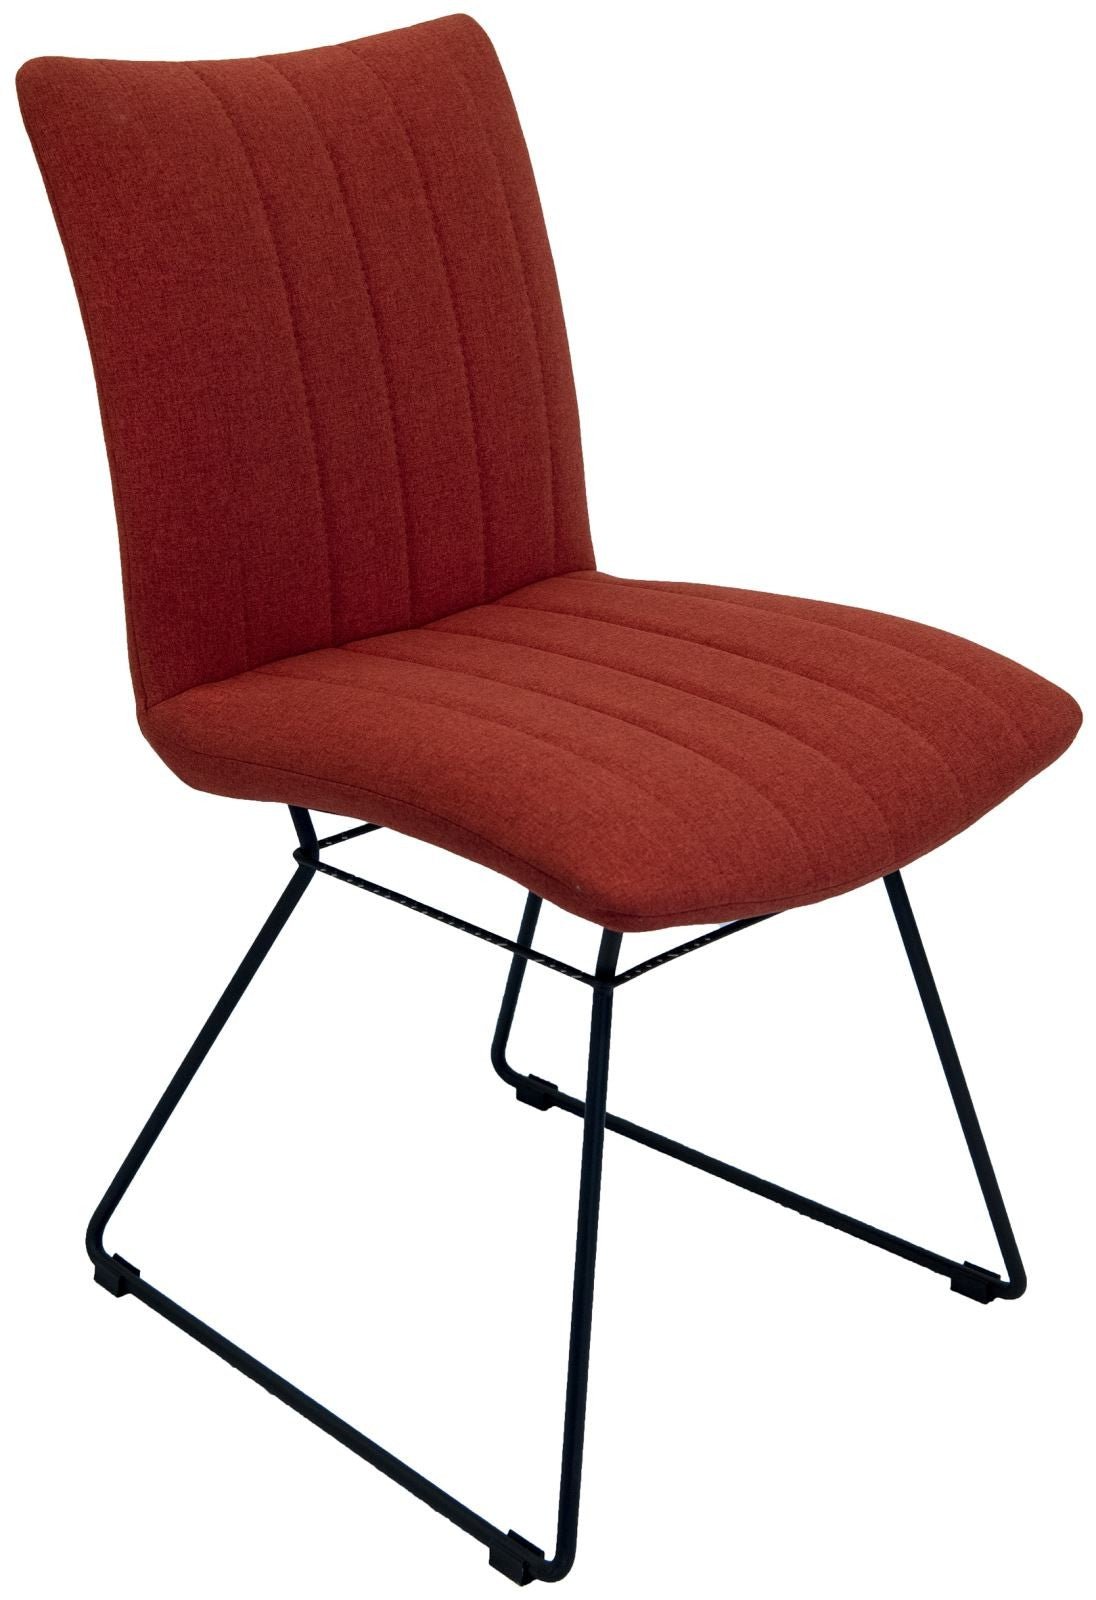 Riviera Dining Chair - Orange